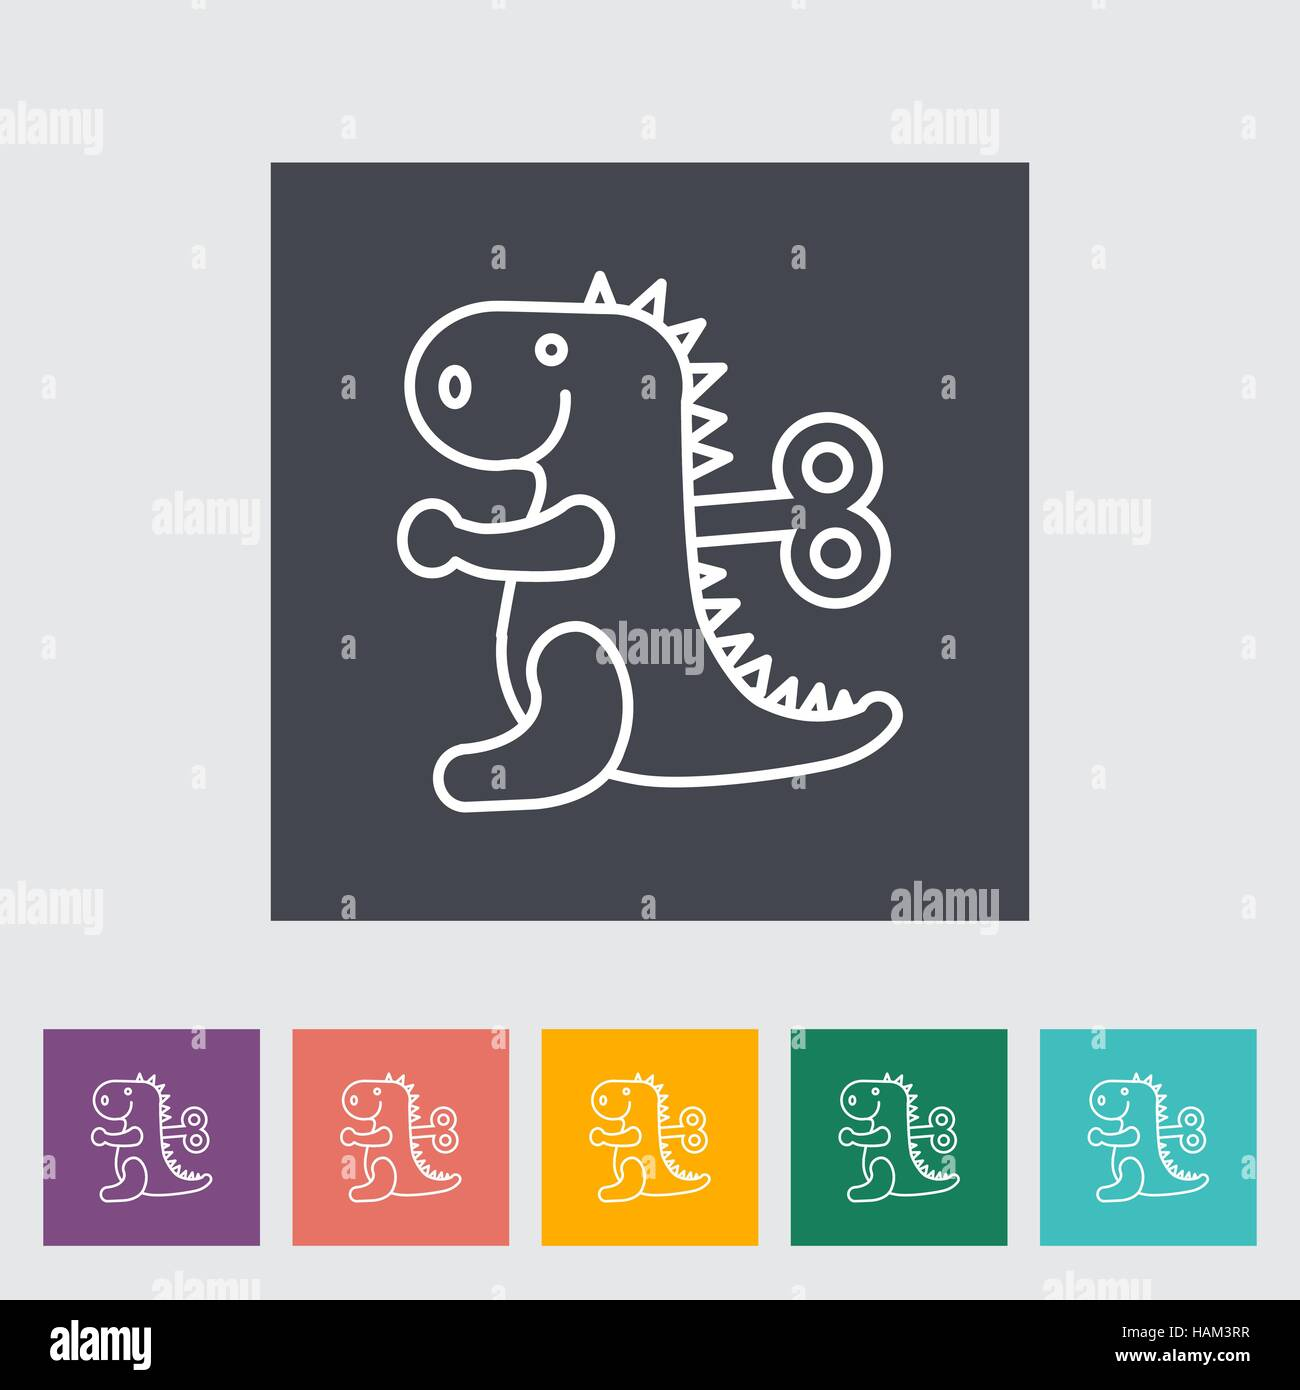 Dinosaurus toy thin line flat vector related icon set for web and mobile applications. It can be used as - pictogram, Stock Vector